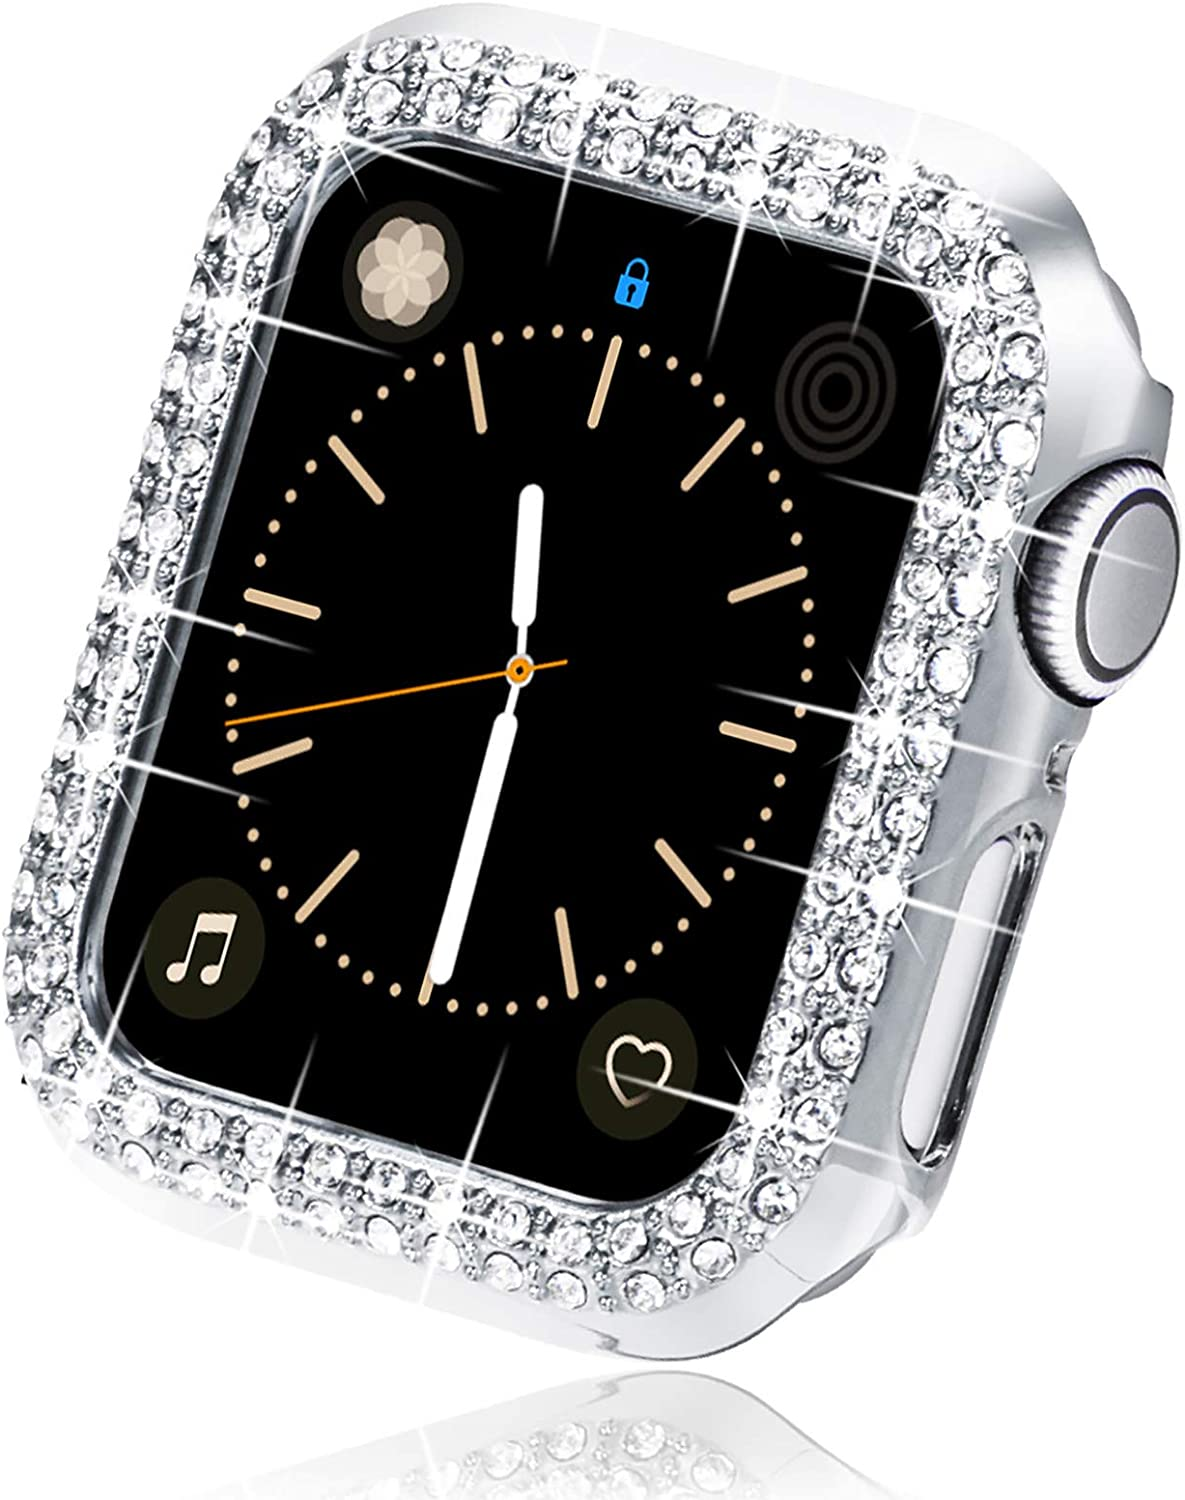 Surace 42mm Case Compatible with Apple Watch Case, Bling Frame Protective Case Compatible for iWatch Series 3/2/1, Silver